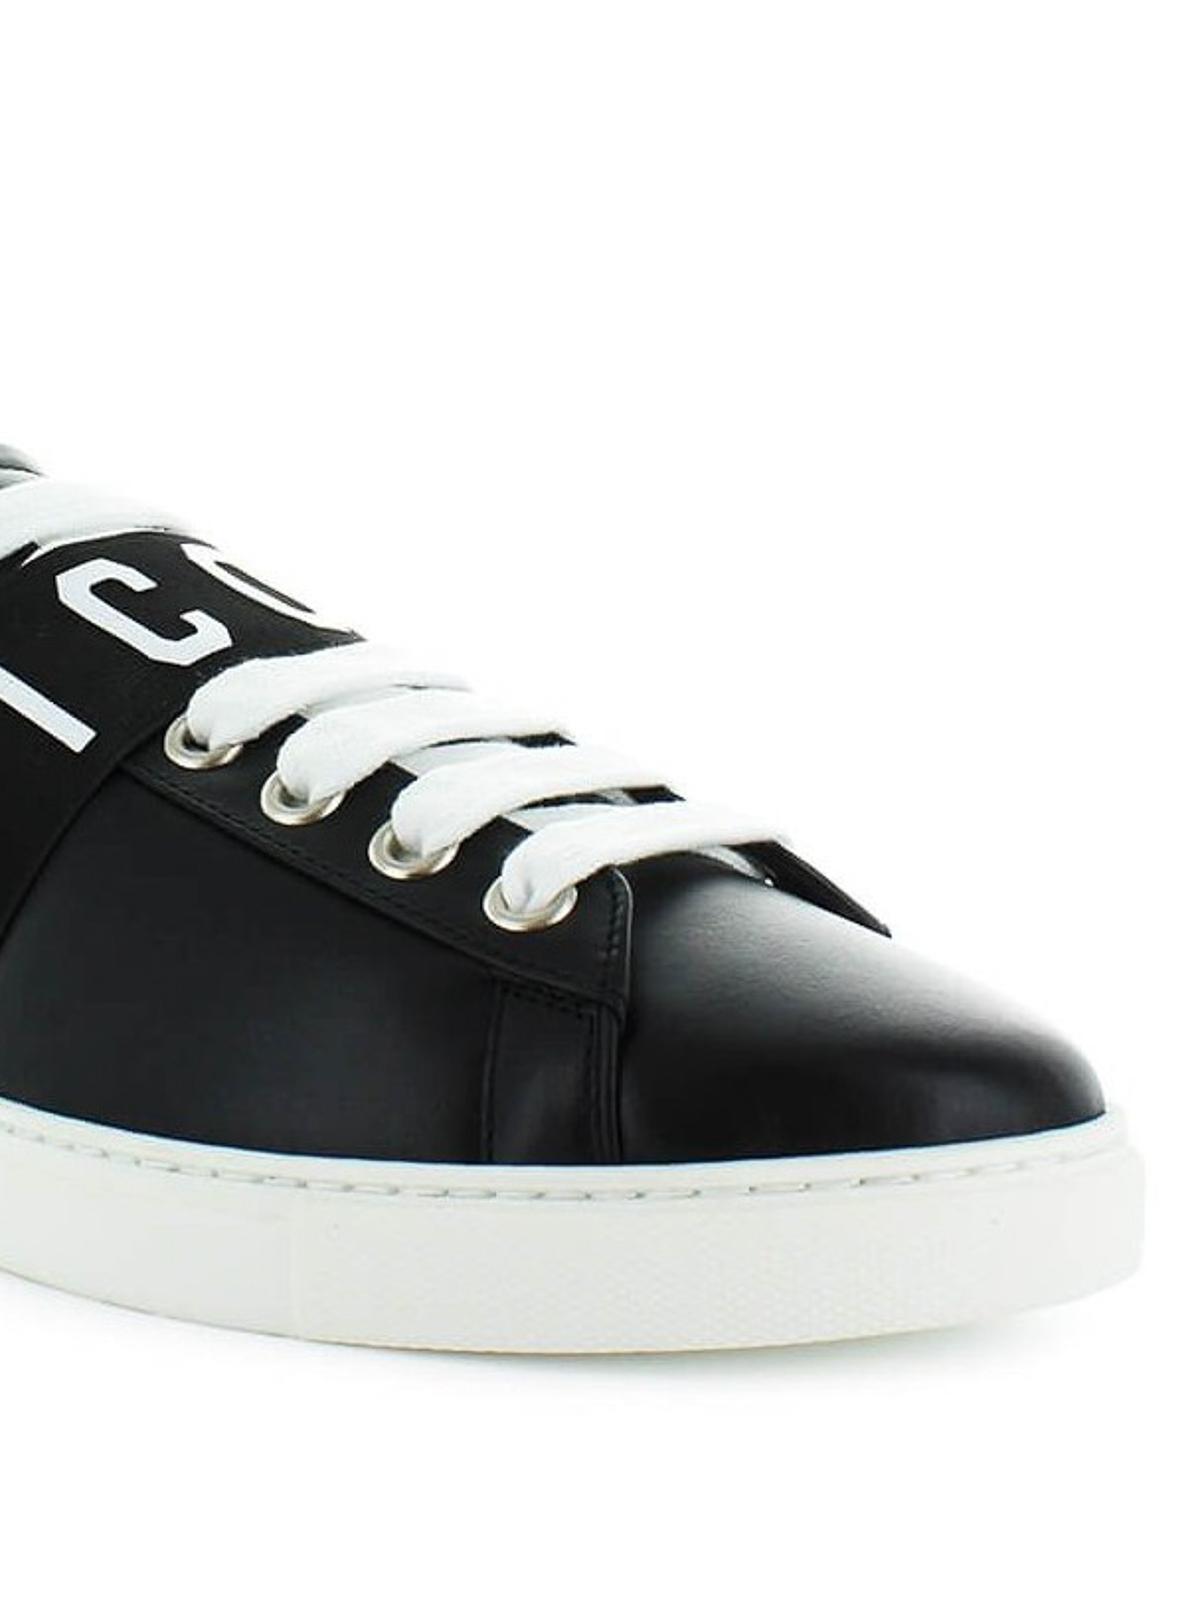 Icon Low black leather sneakers